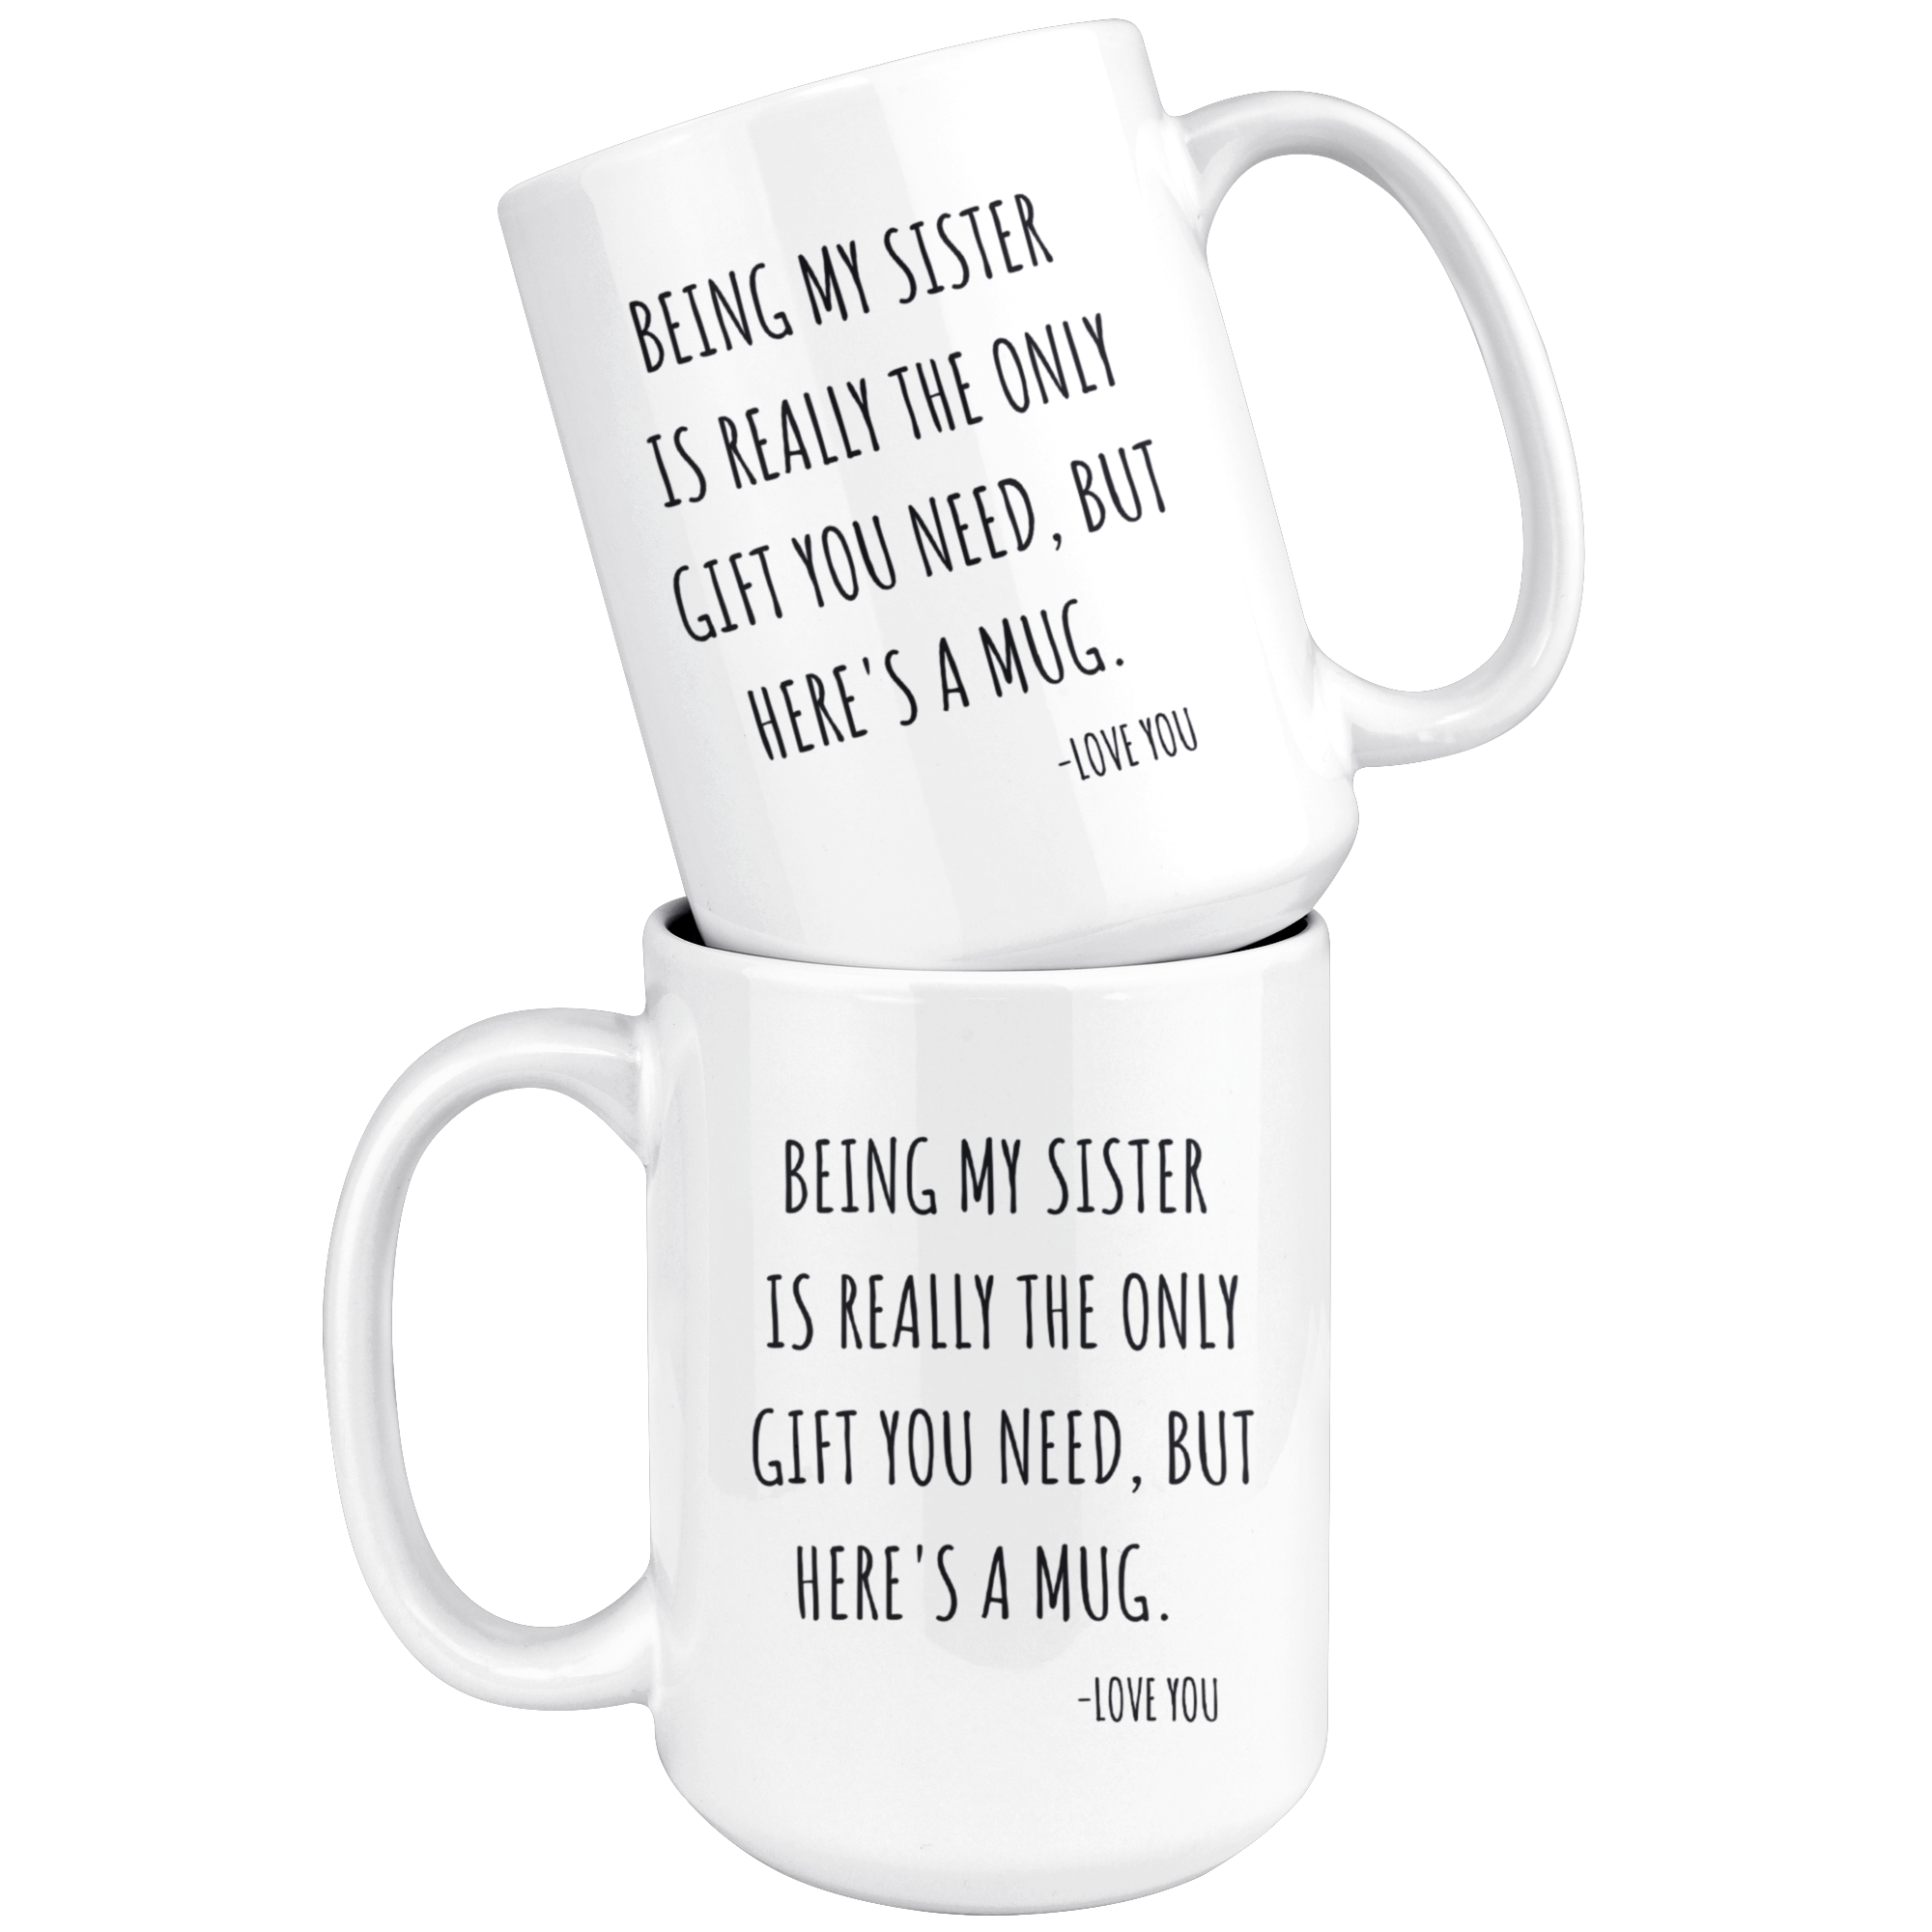 Funny Sister Mug, Being My Sister is the Only Gift You Need